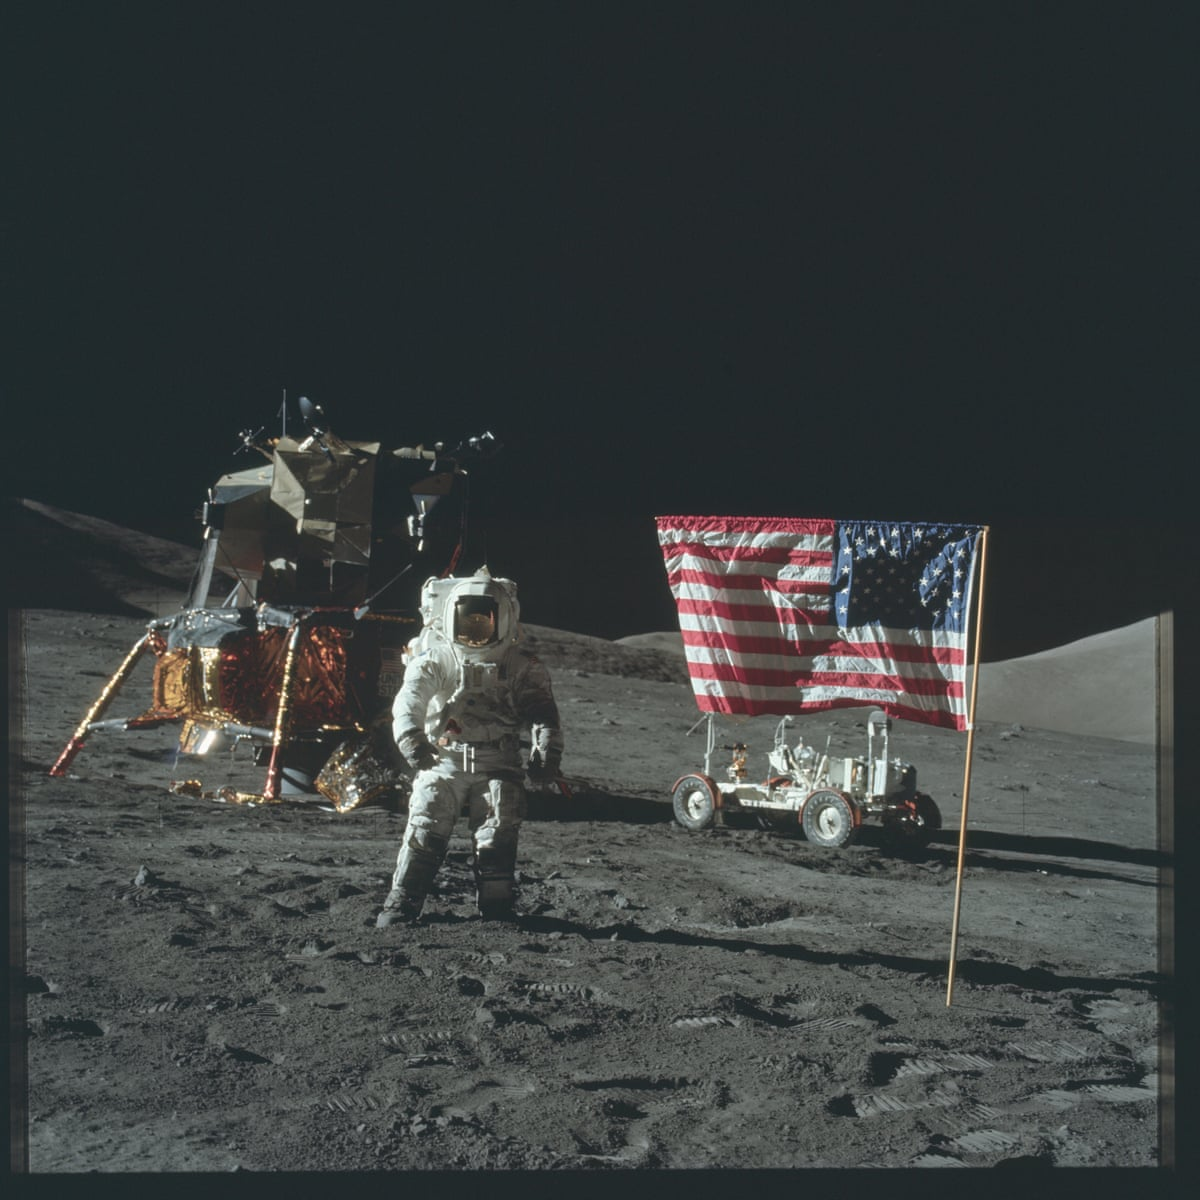 nasa apollo program pictures - photo #8